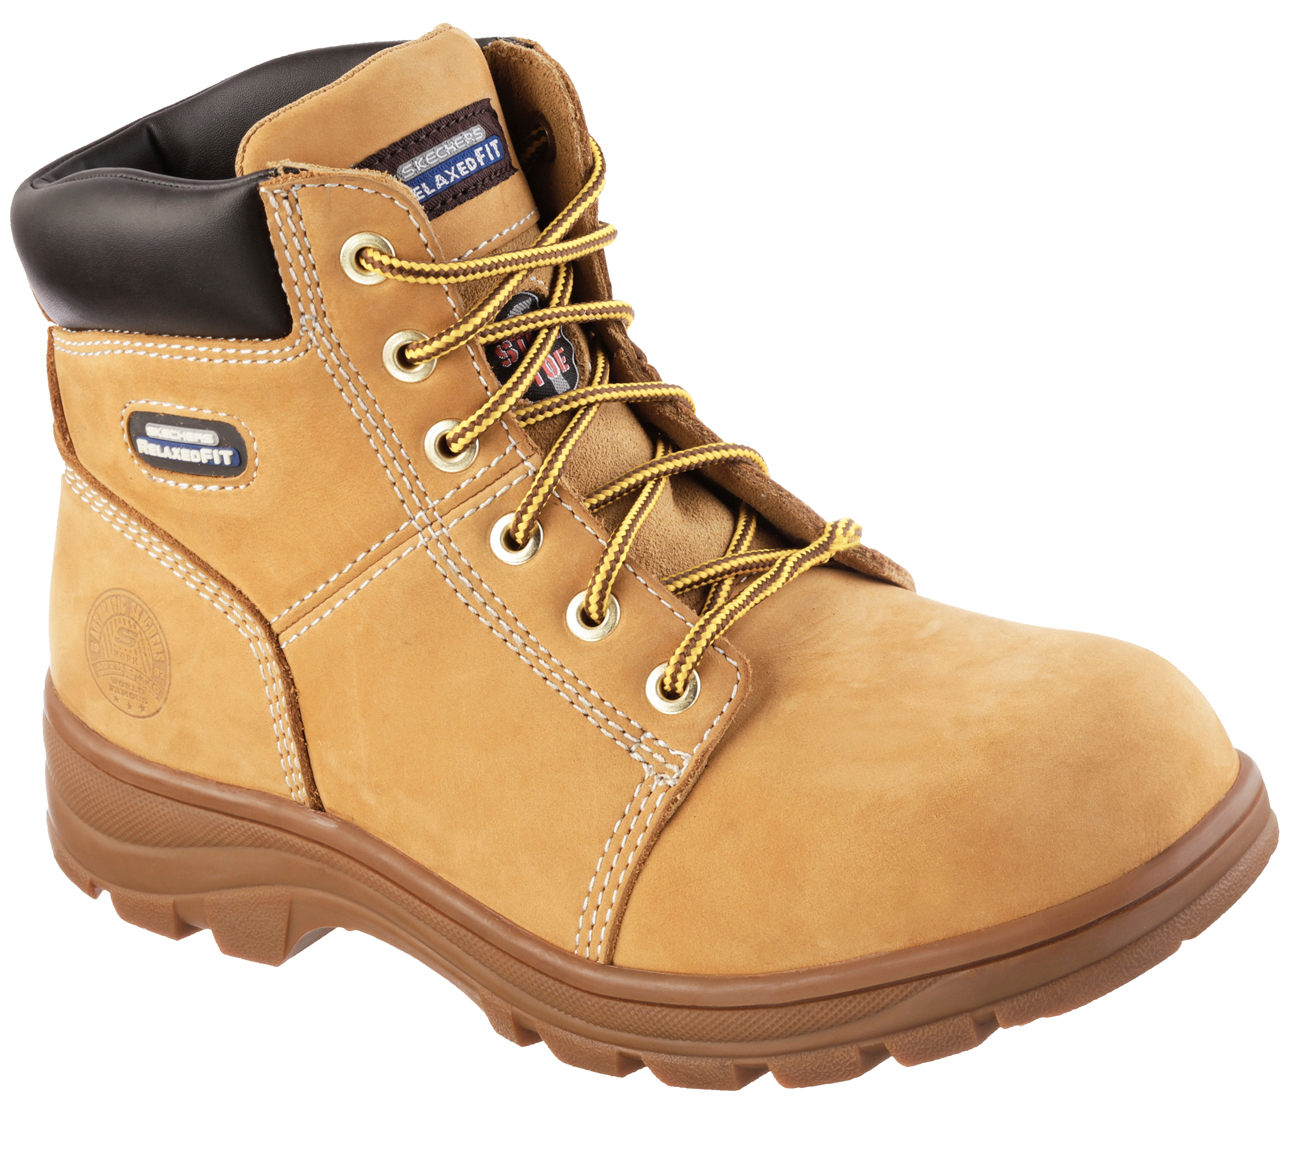 Skechers Work Shoes Sale: Save Up to 30% Off! Shop viplikecuatoi.ml's huge selection of Skechers Work Shoes - Over styles available. FREE Shipping & Exchanges, and a % price guarantee!